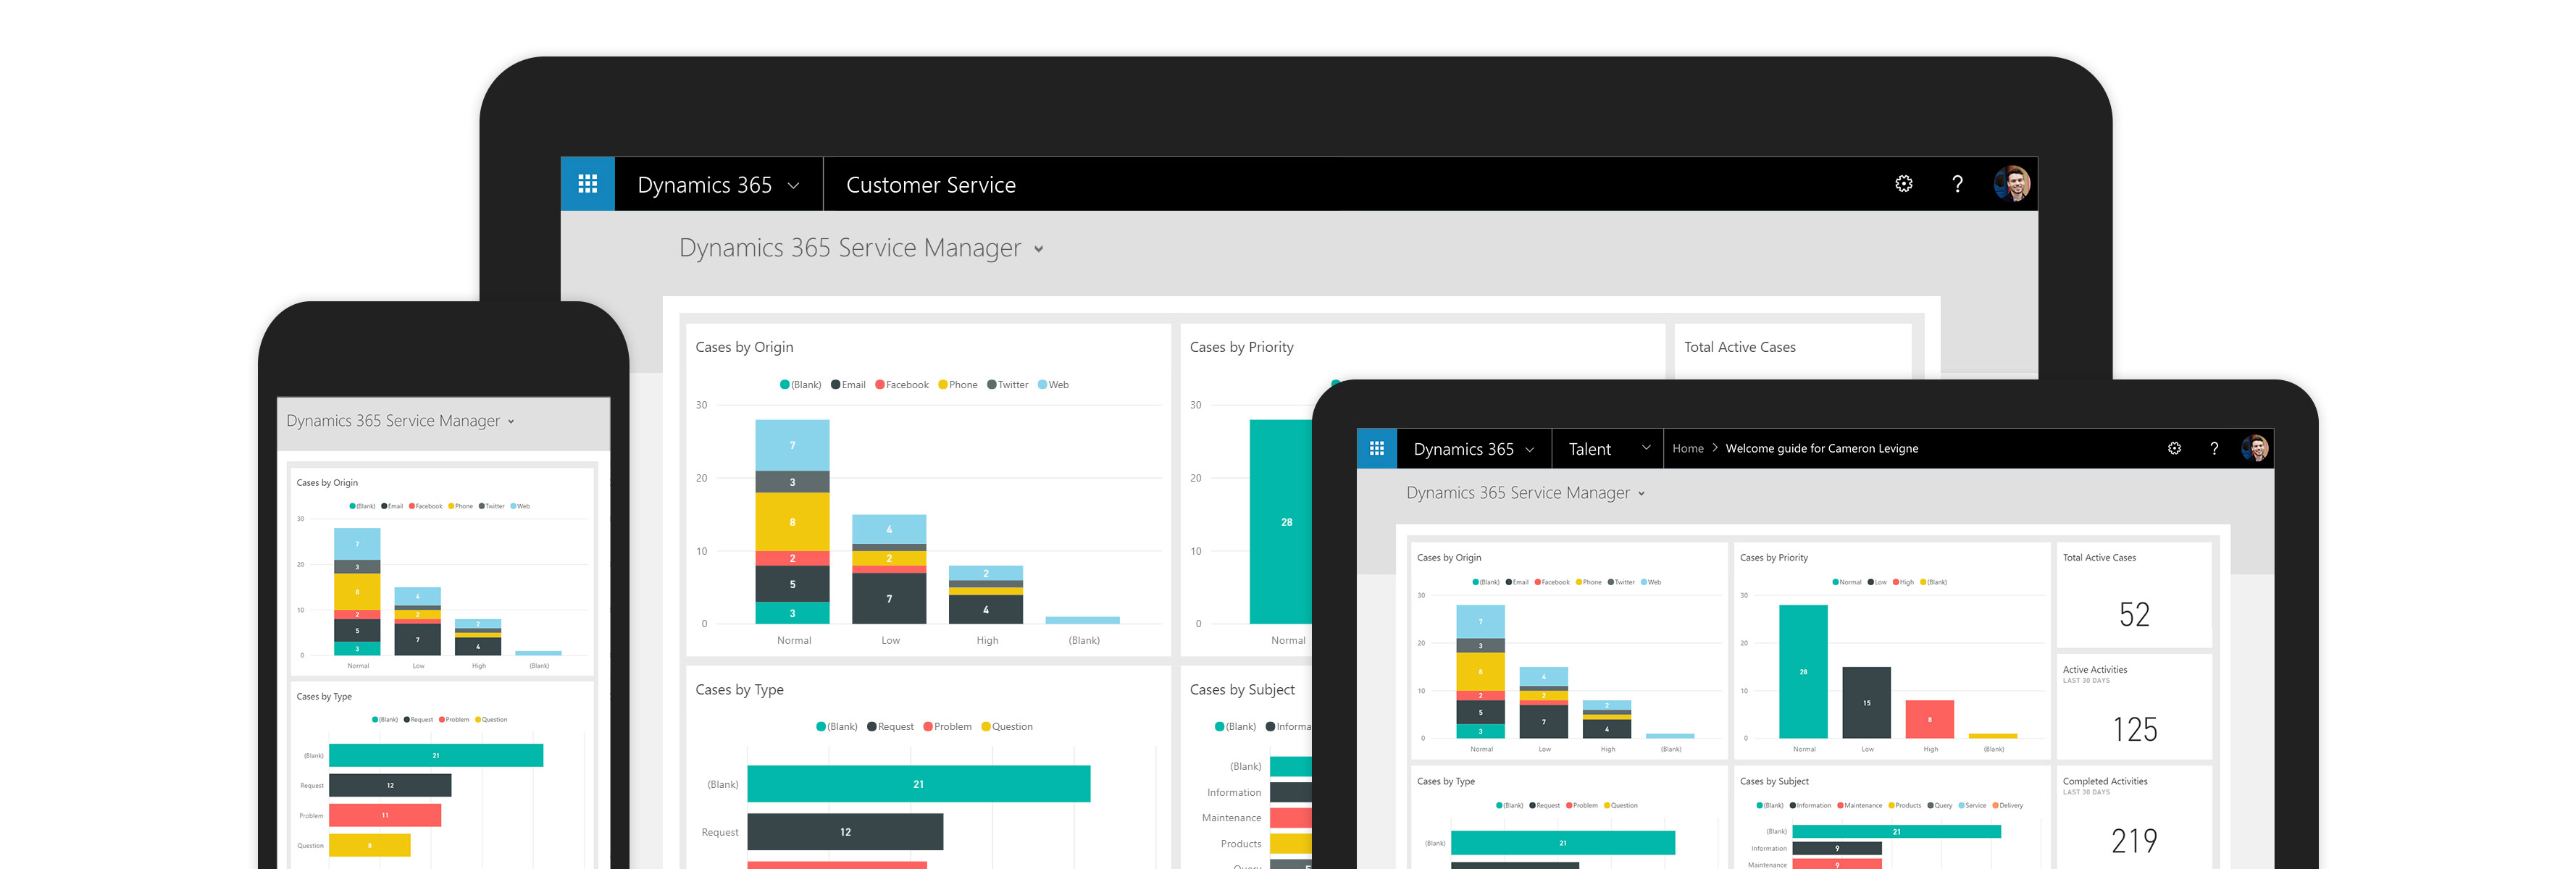 customer service microsoft dynamics 365